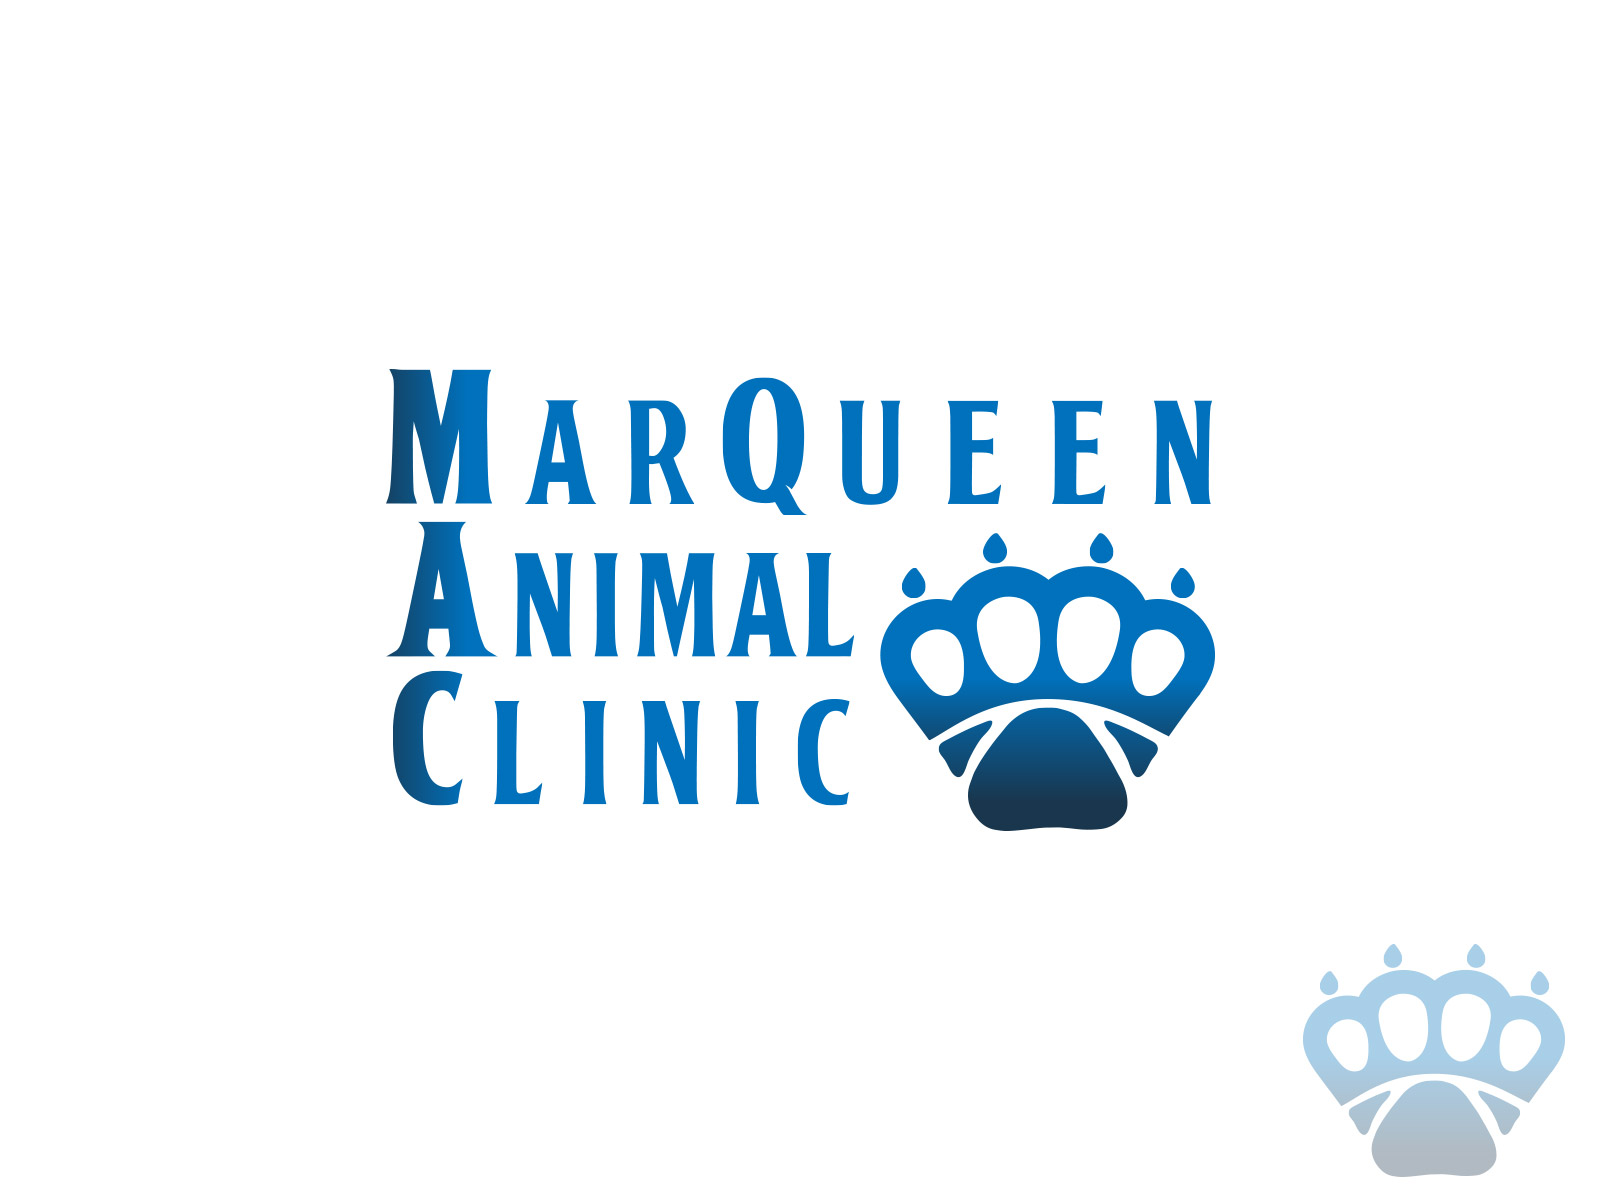 Logo Design by olii - Entry No. 67 in the Logo Design Contest Fun Logo Design for MarQueen Animal Clinic.